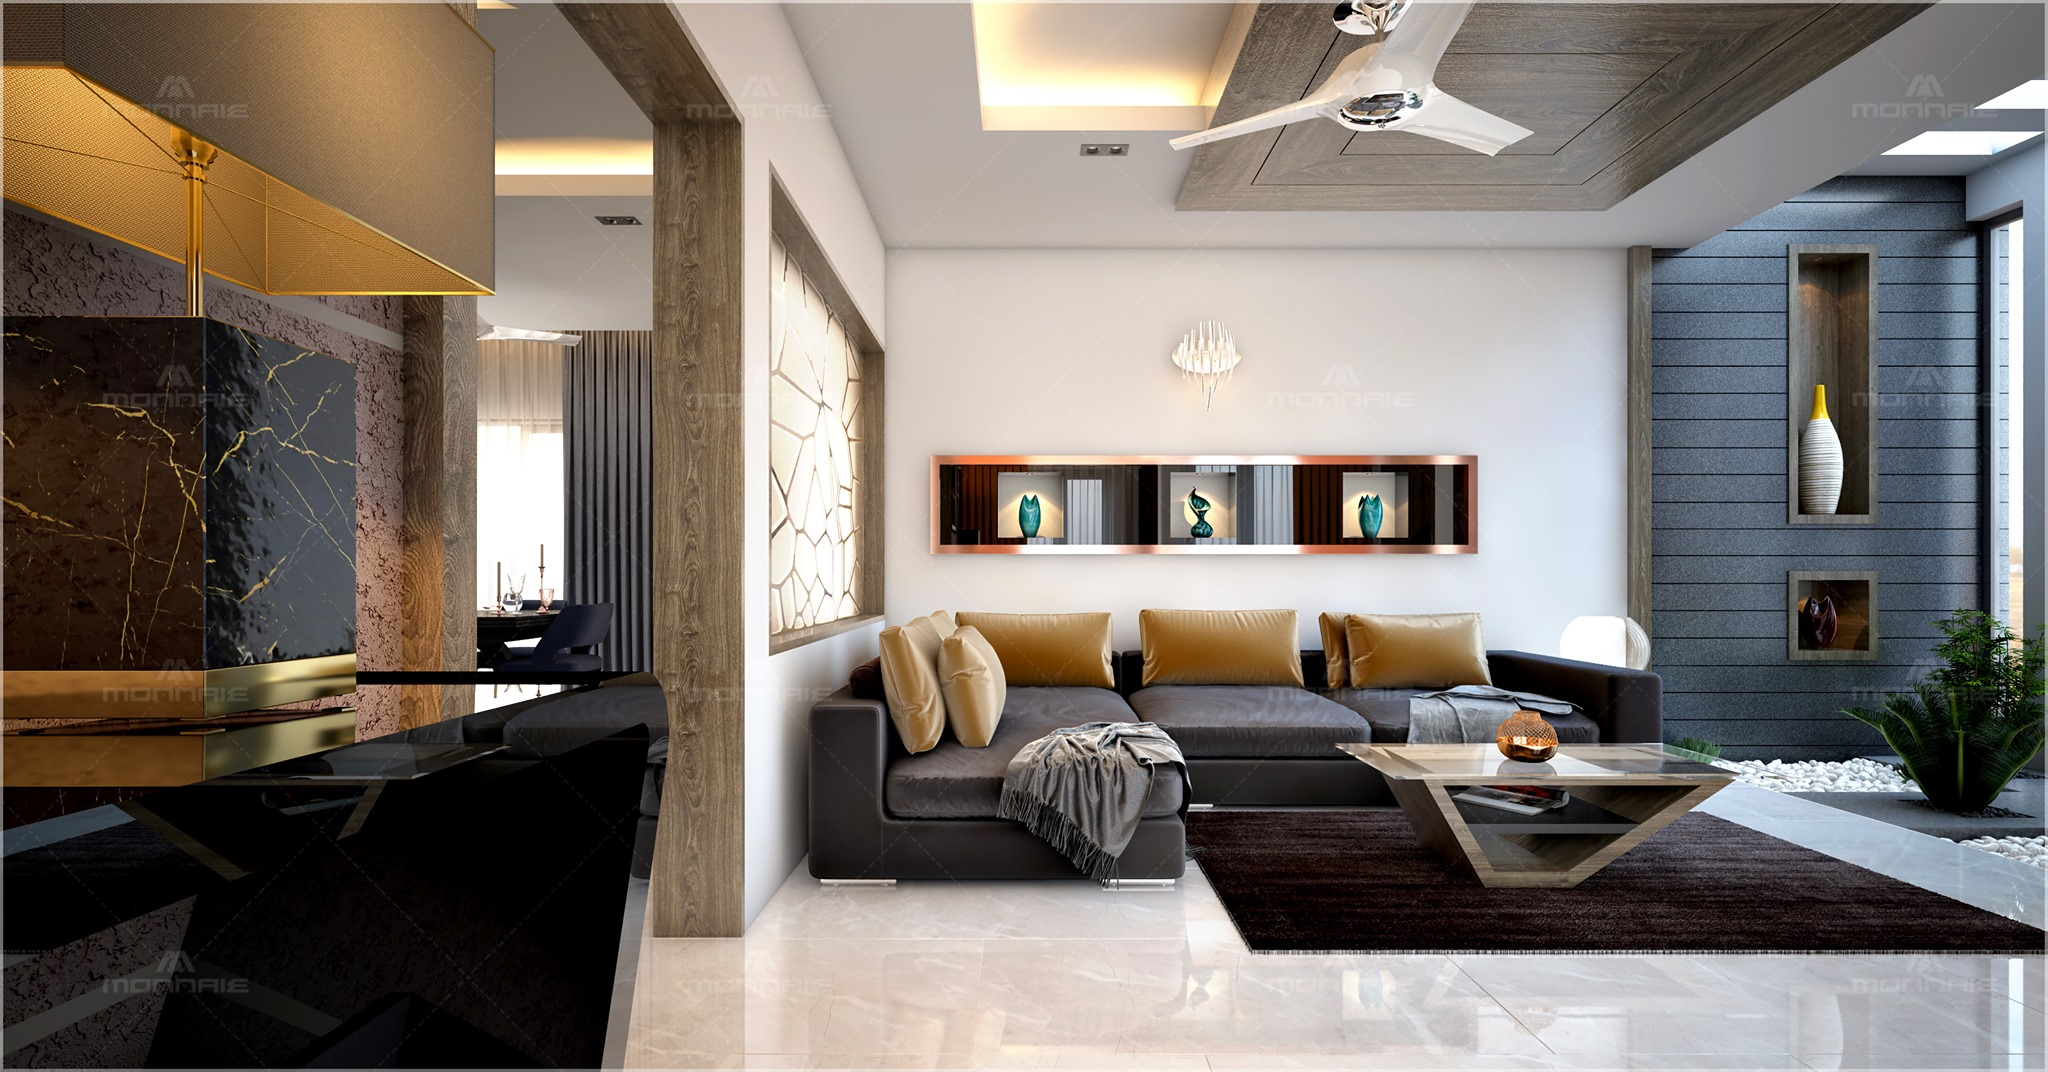 Kerala flooring trends